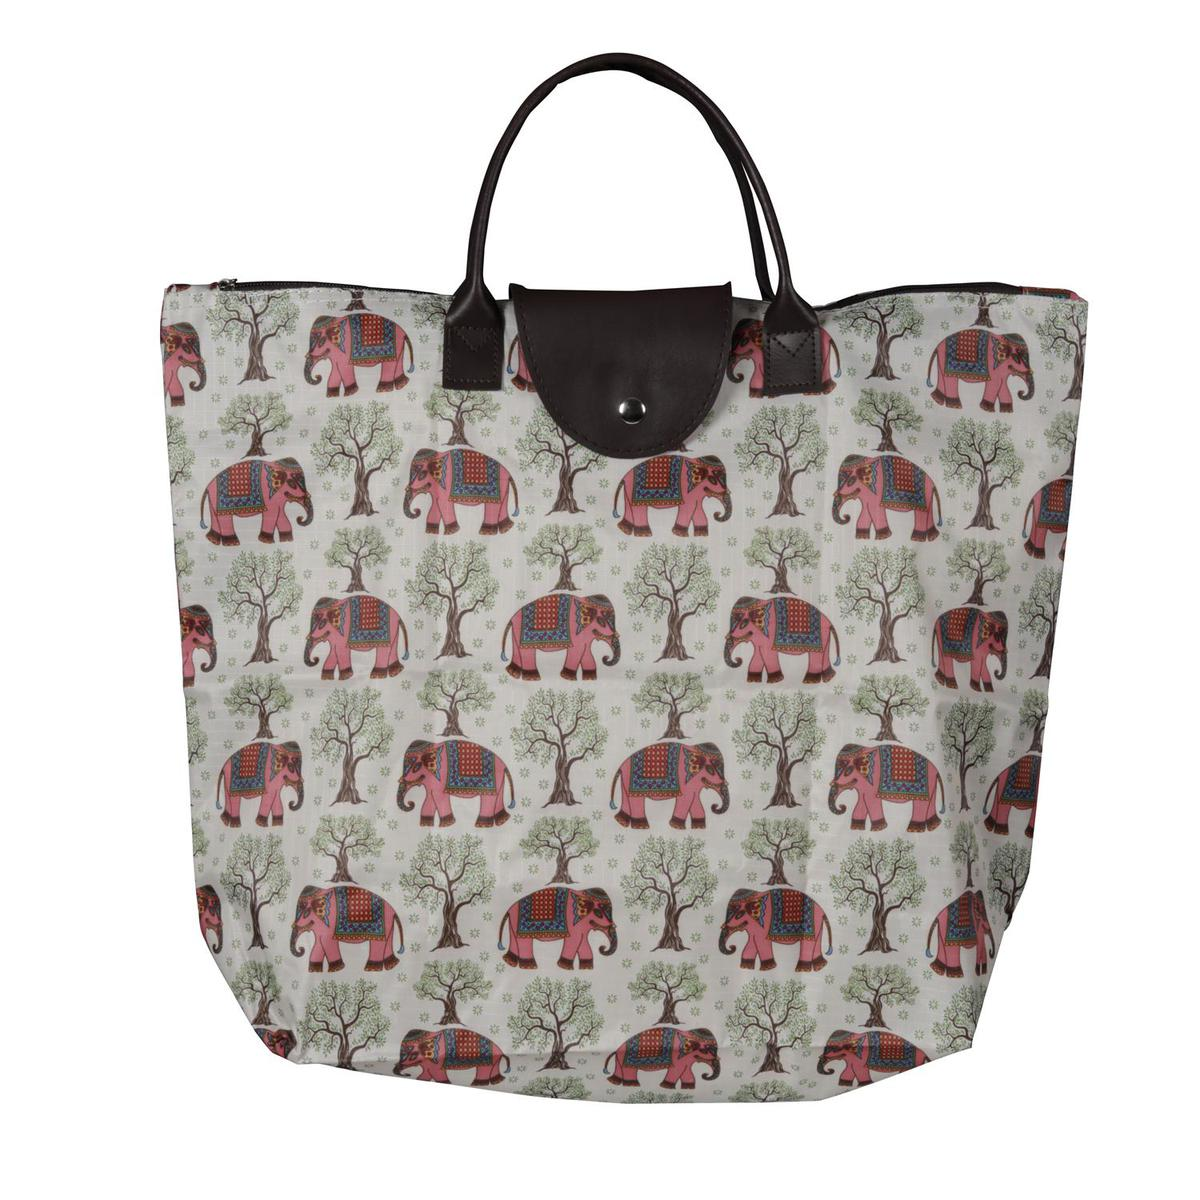 NFI essentials - Foldable Polyester Blend Printed Shopping Bag (Green-Pink)